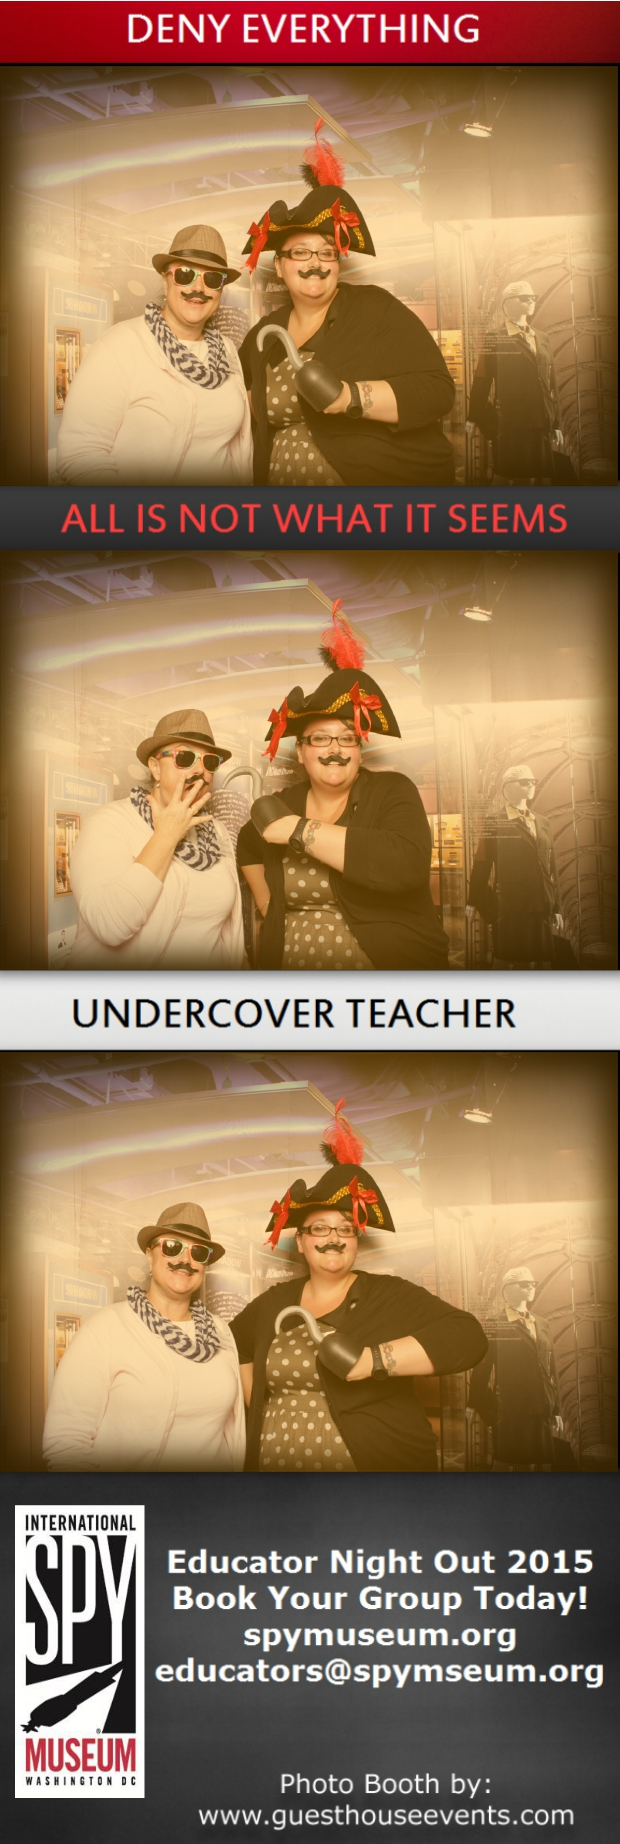 Guest House Events Photo Booth Spy Museum Educator Night Out (40).jpg